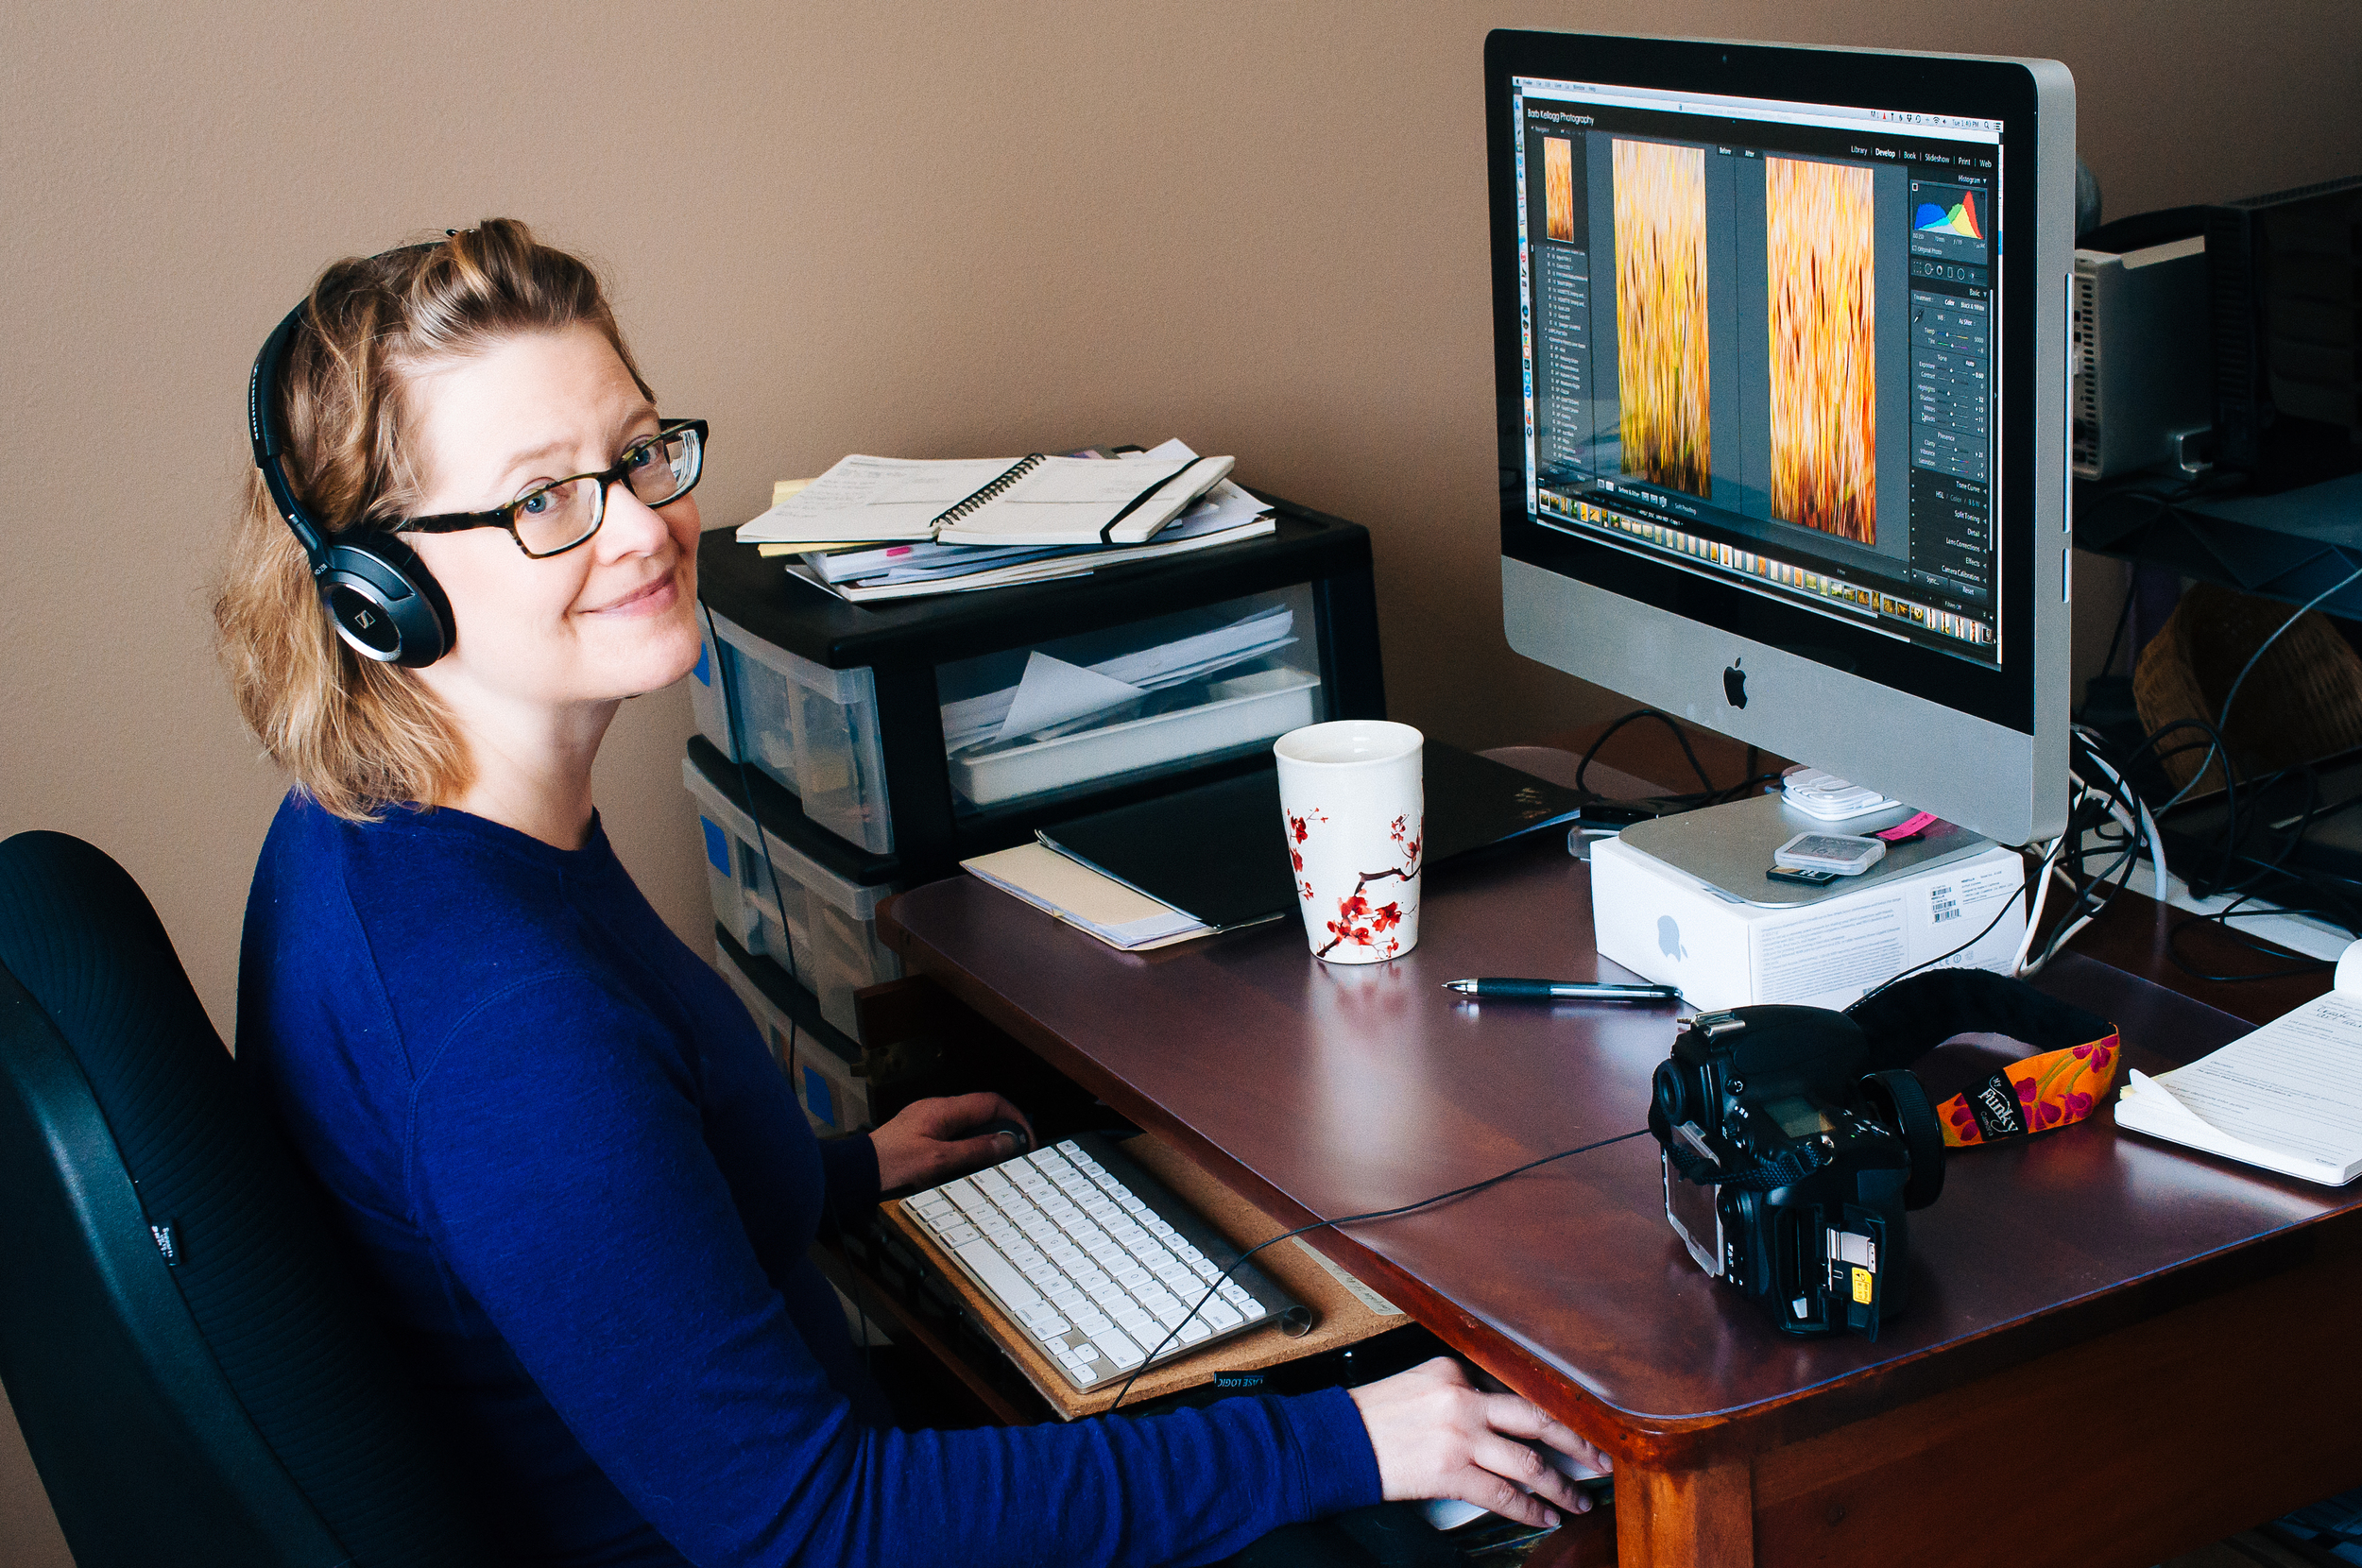 Part of my process of creating new images. Although I'm typically looking at my monitor, not the camera. :)